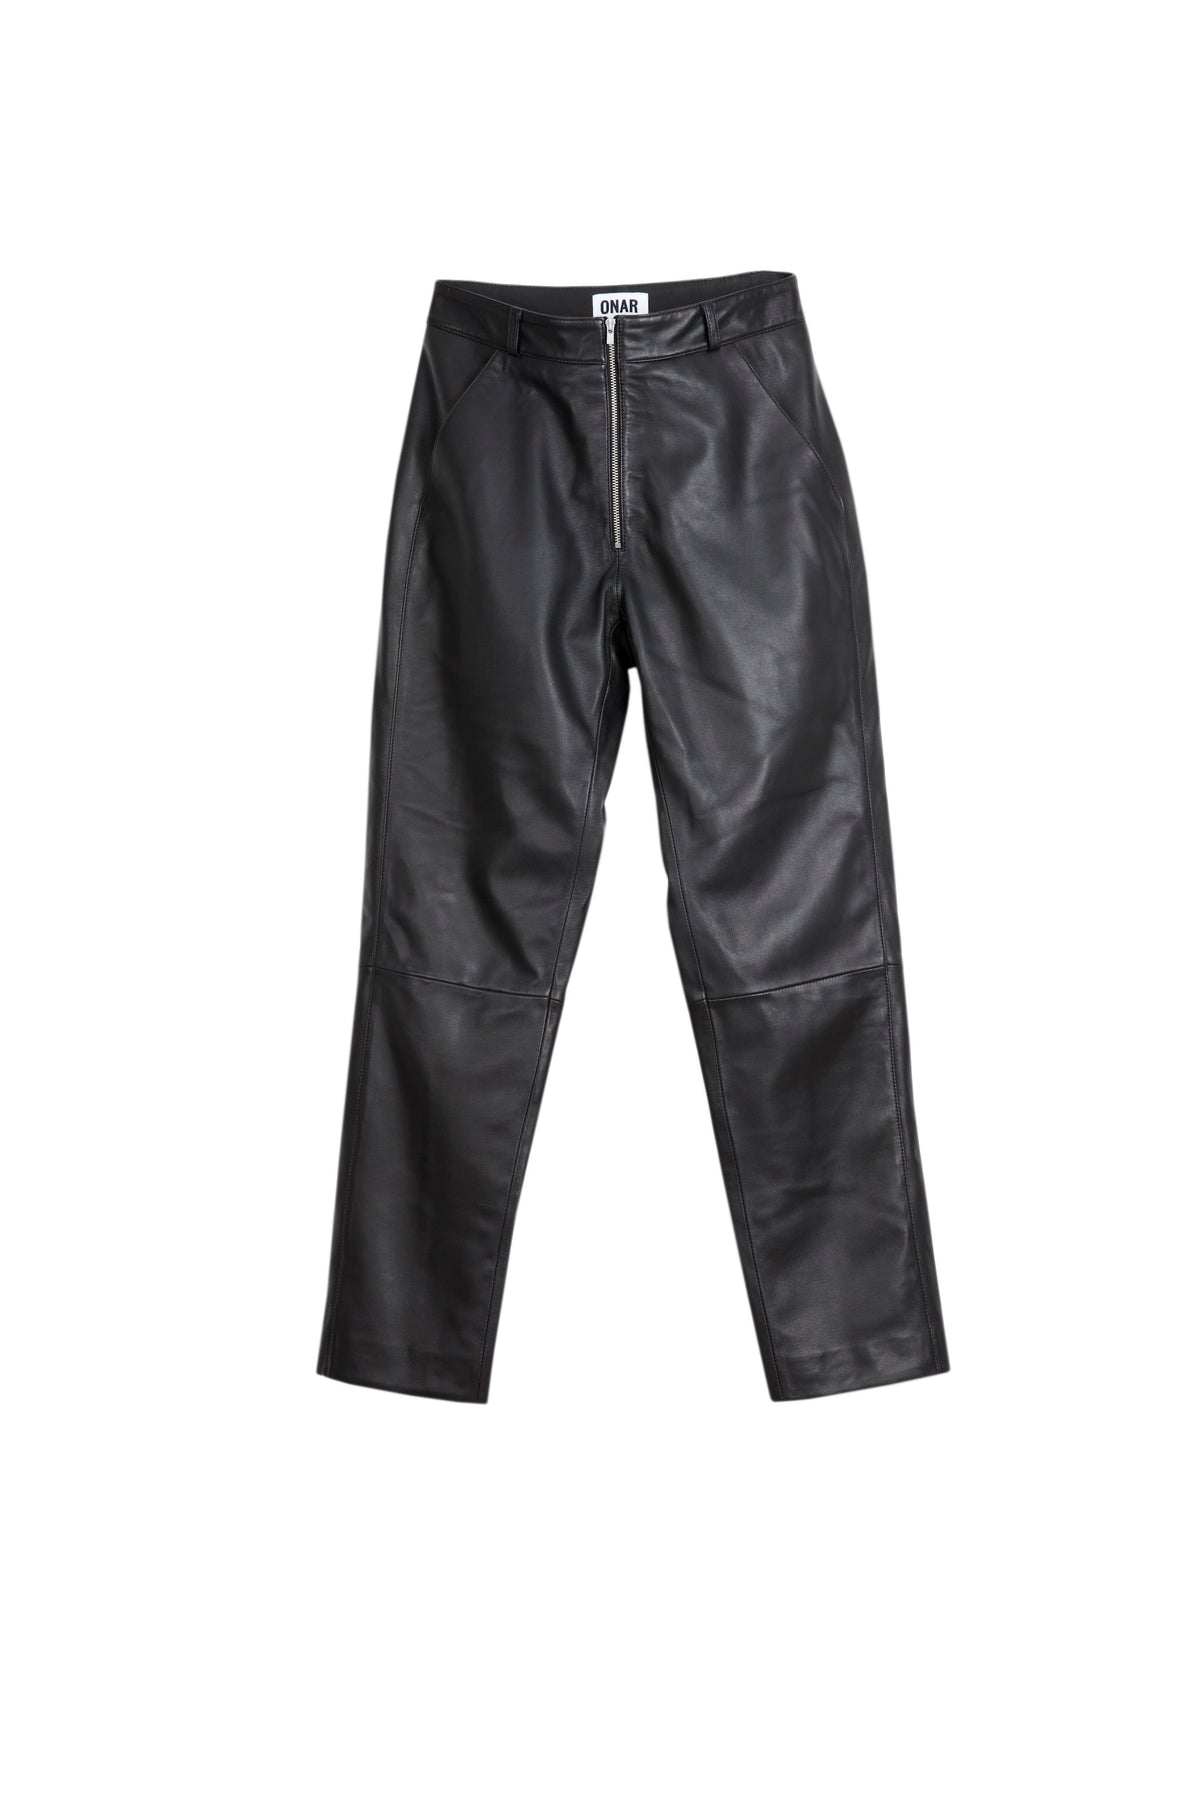 Stakra Trousers